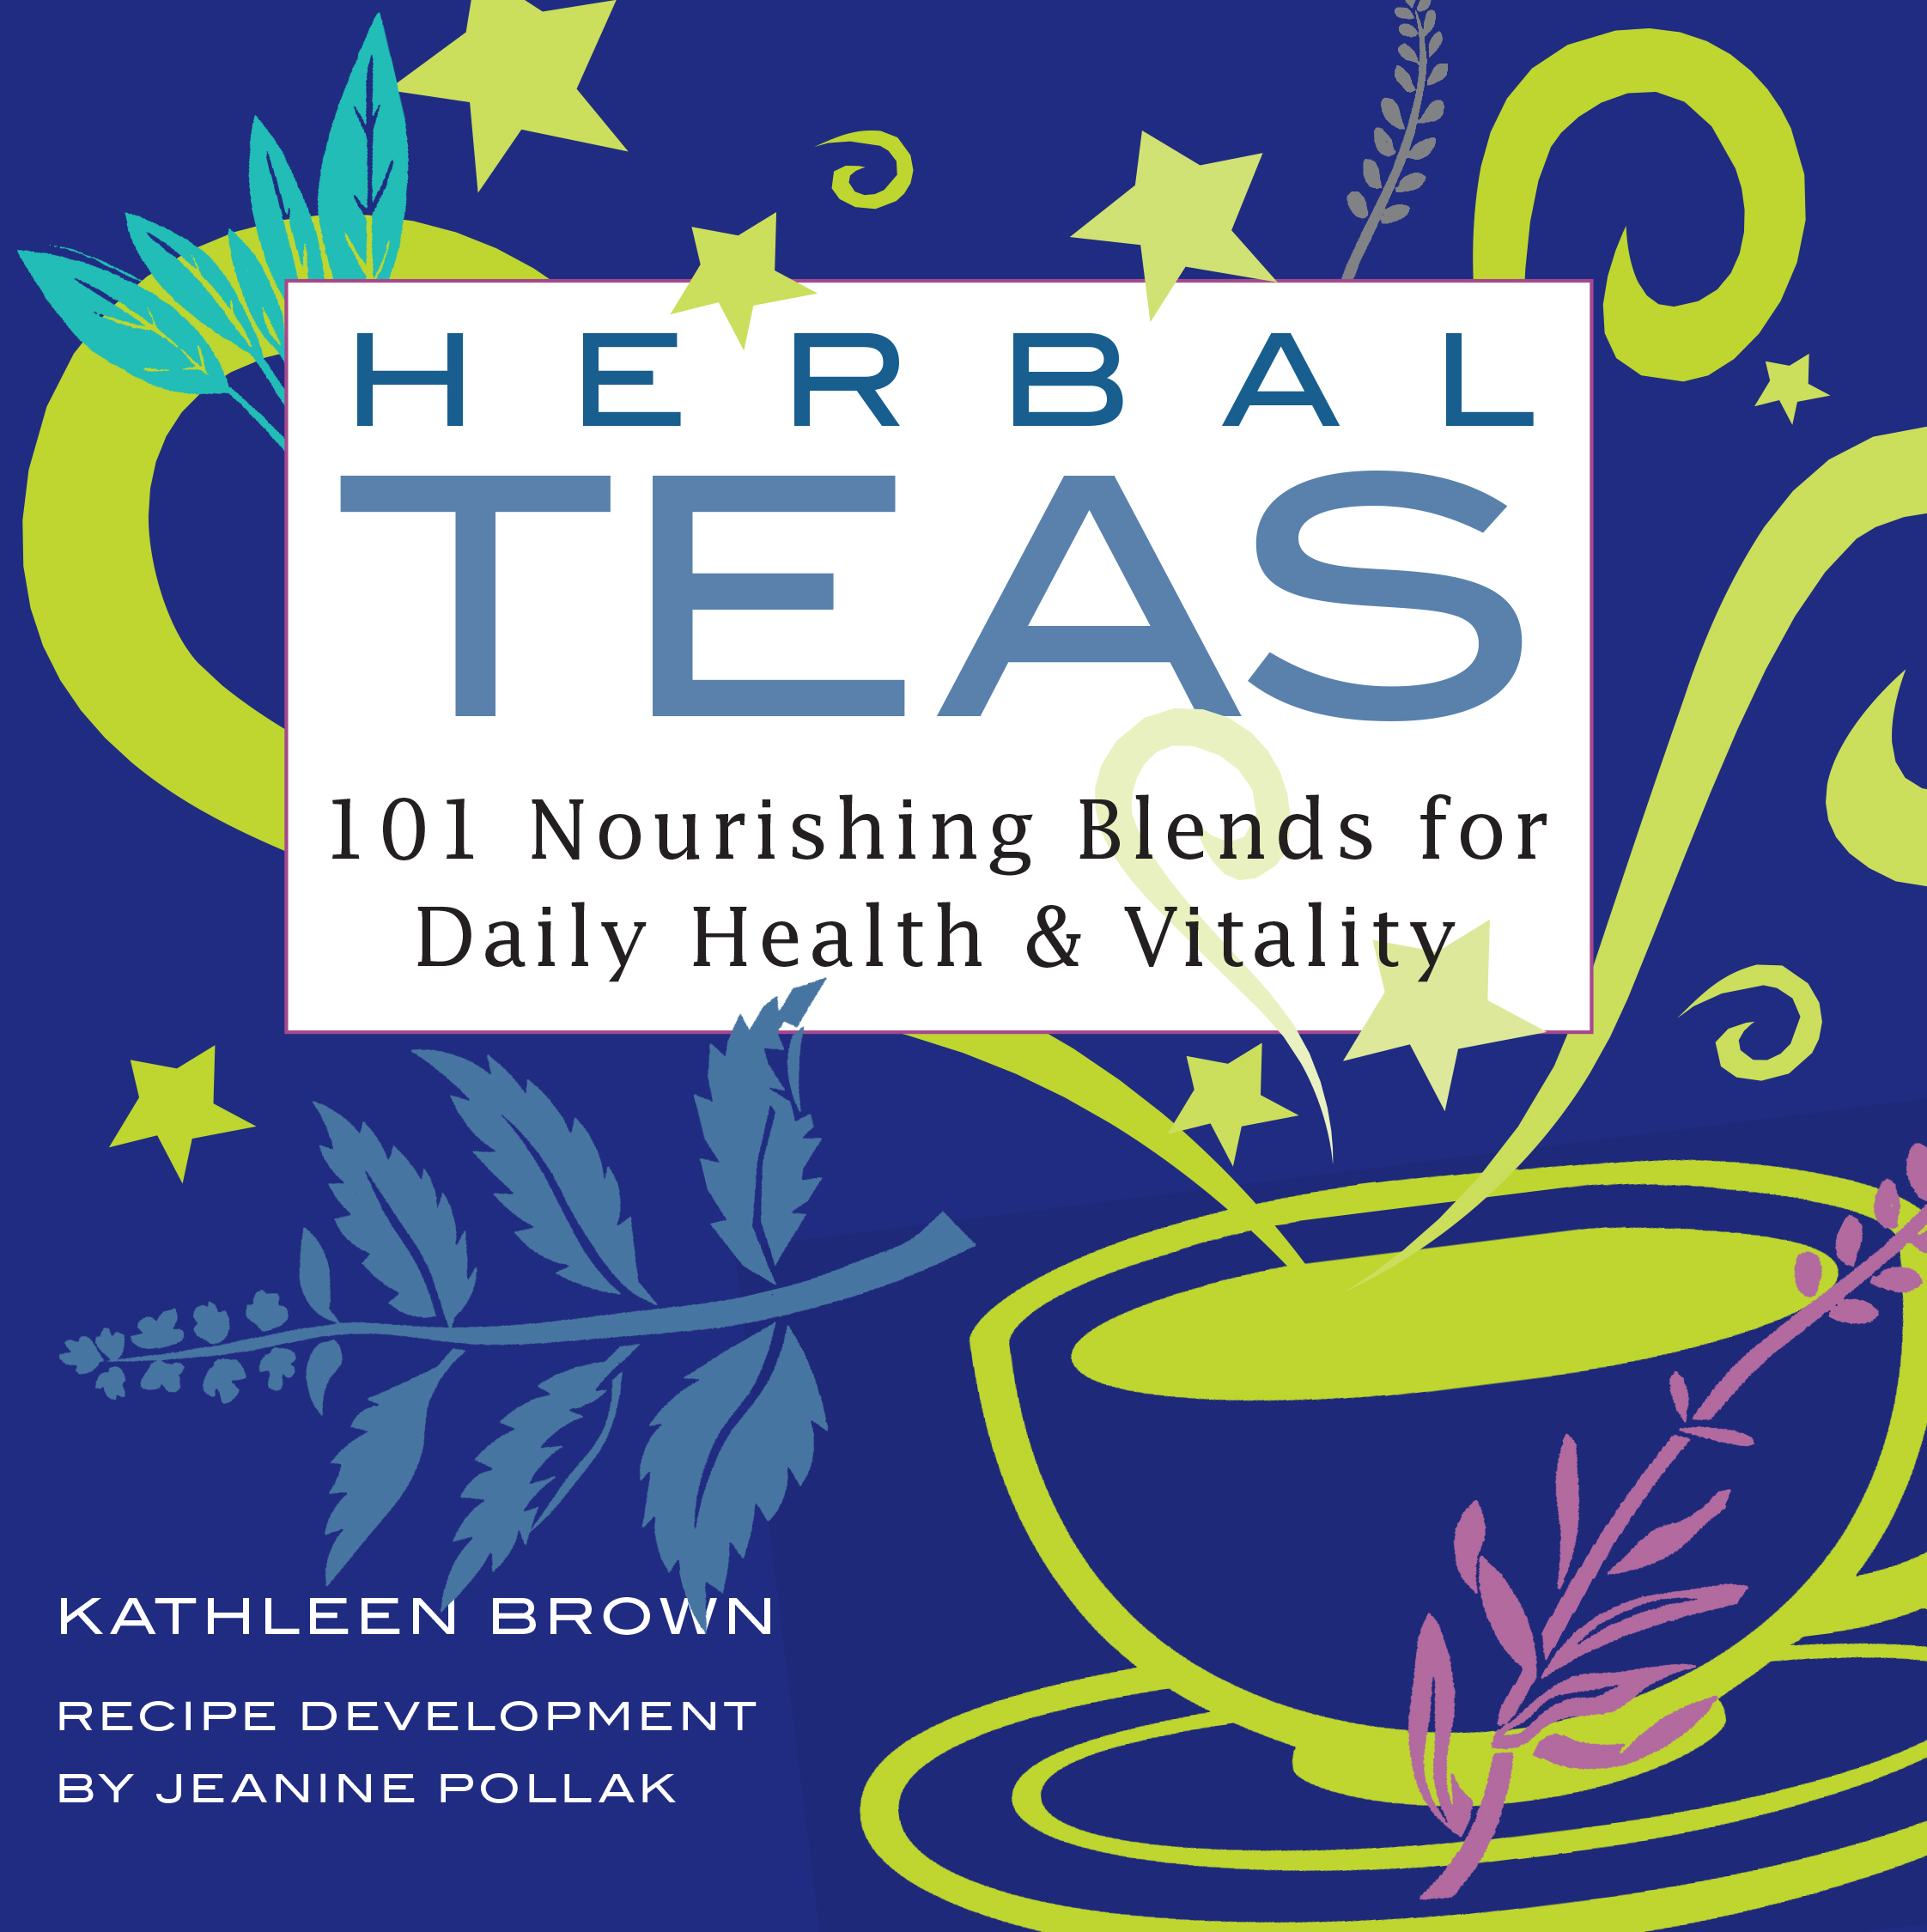 Herbal Teas 101 Nourishing Blends for Daily Health & Vitality - Kathleen Brown